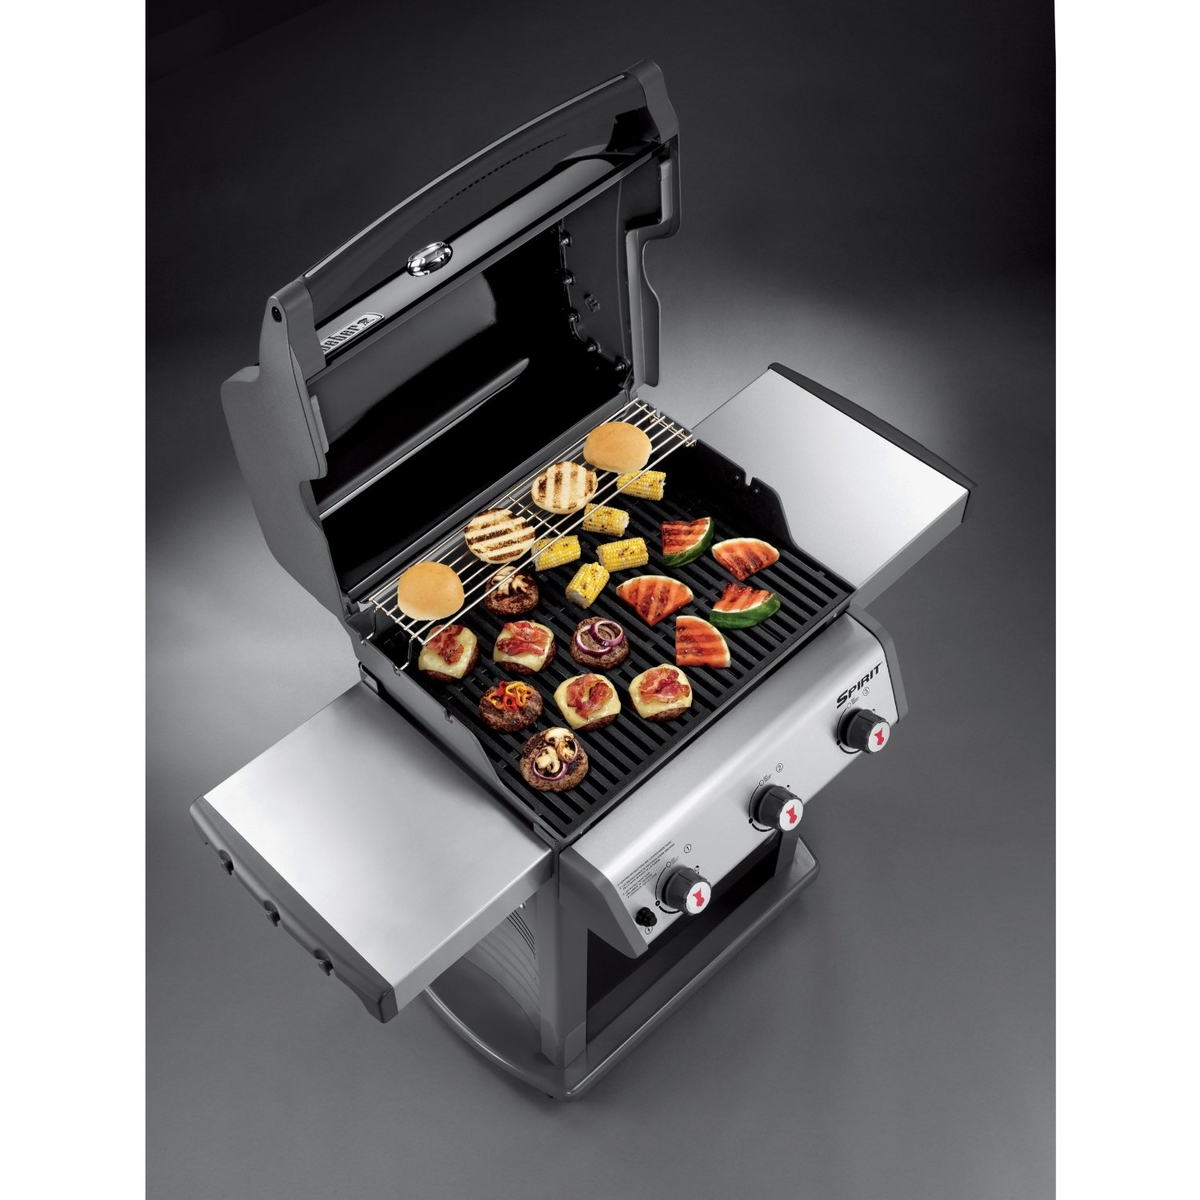 the spirit e310 lp gas grill has two fulluse stainless steel tables and a durable shroud that wonu0027t ever fade peel or rust